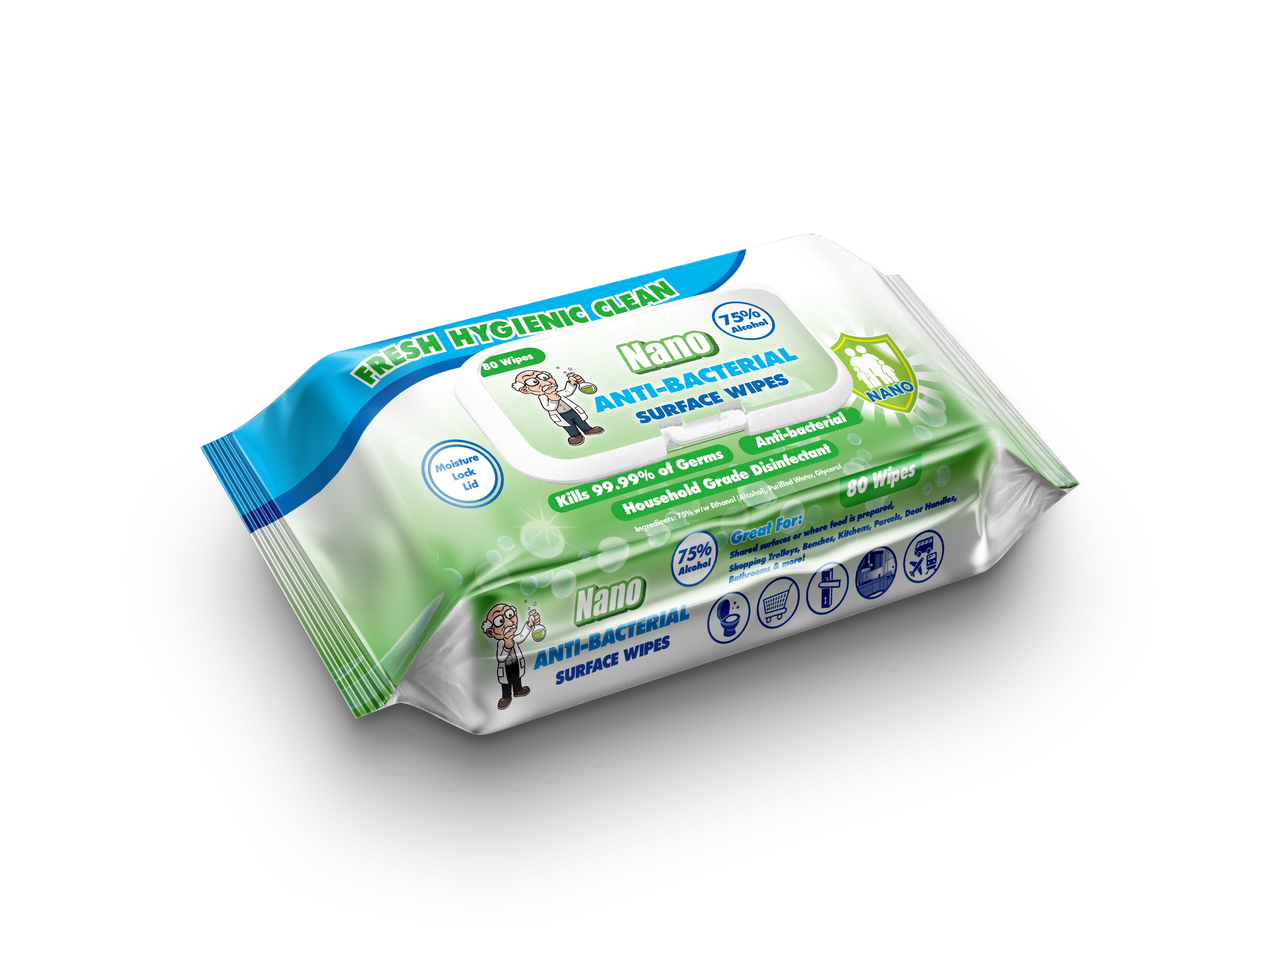 Nano Anti-Bacterial Alcohol Surface Wipes 80 Wipes